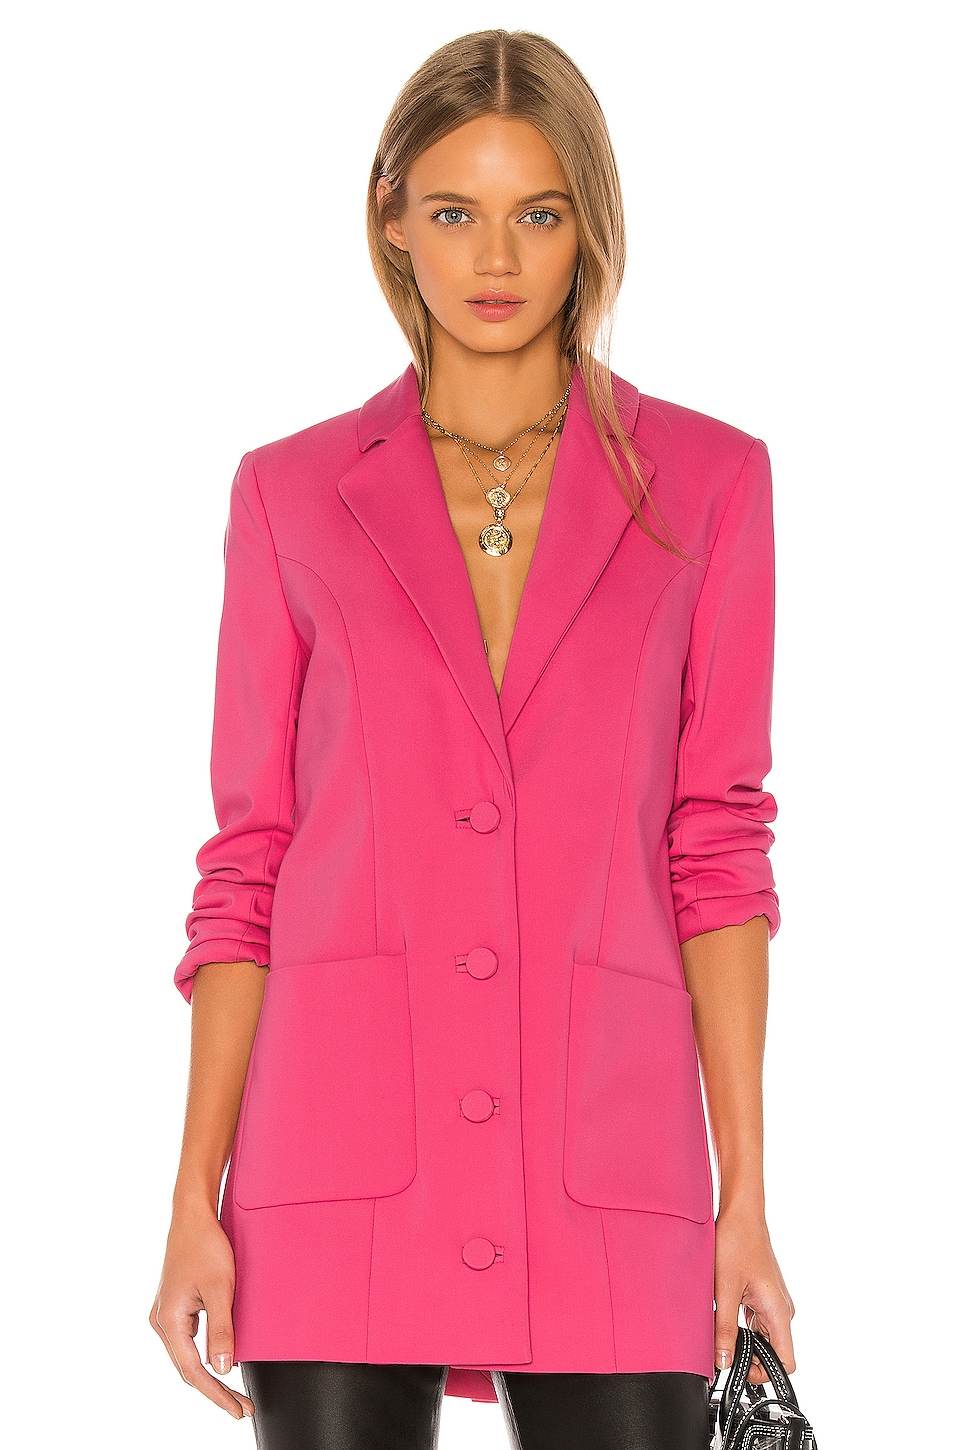 GRLFRND Jeane Suit Jacket in Bright Pink